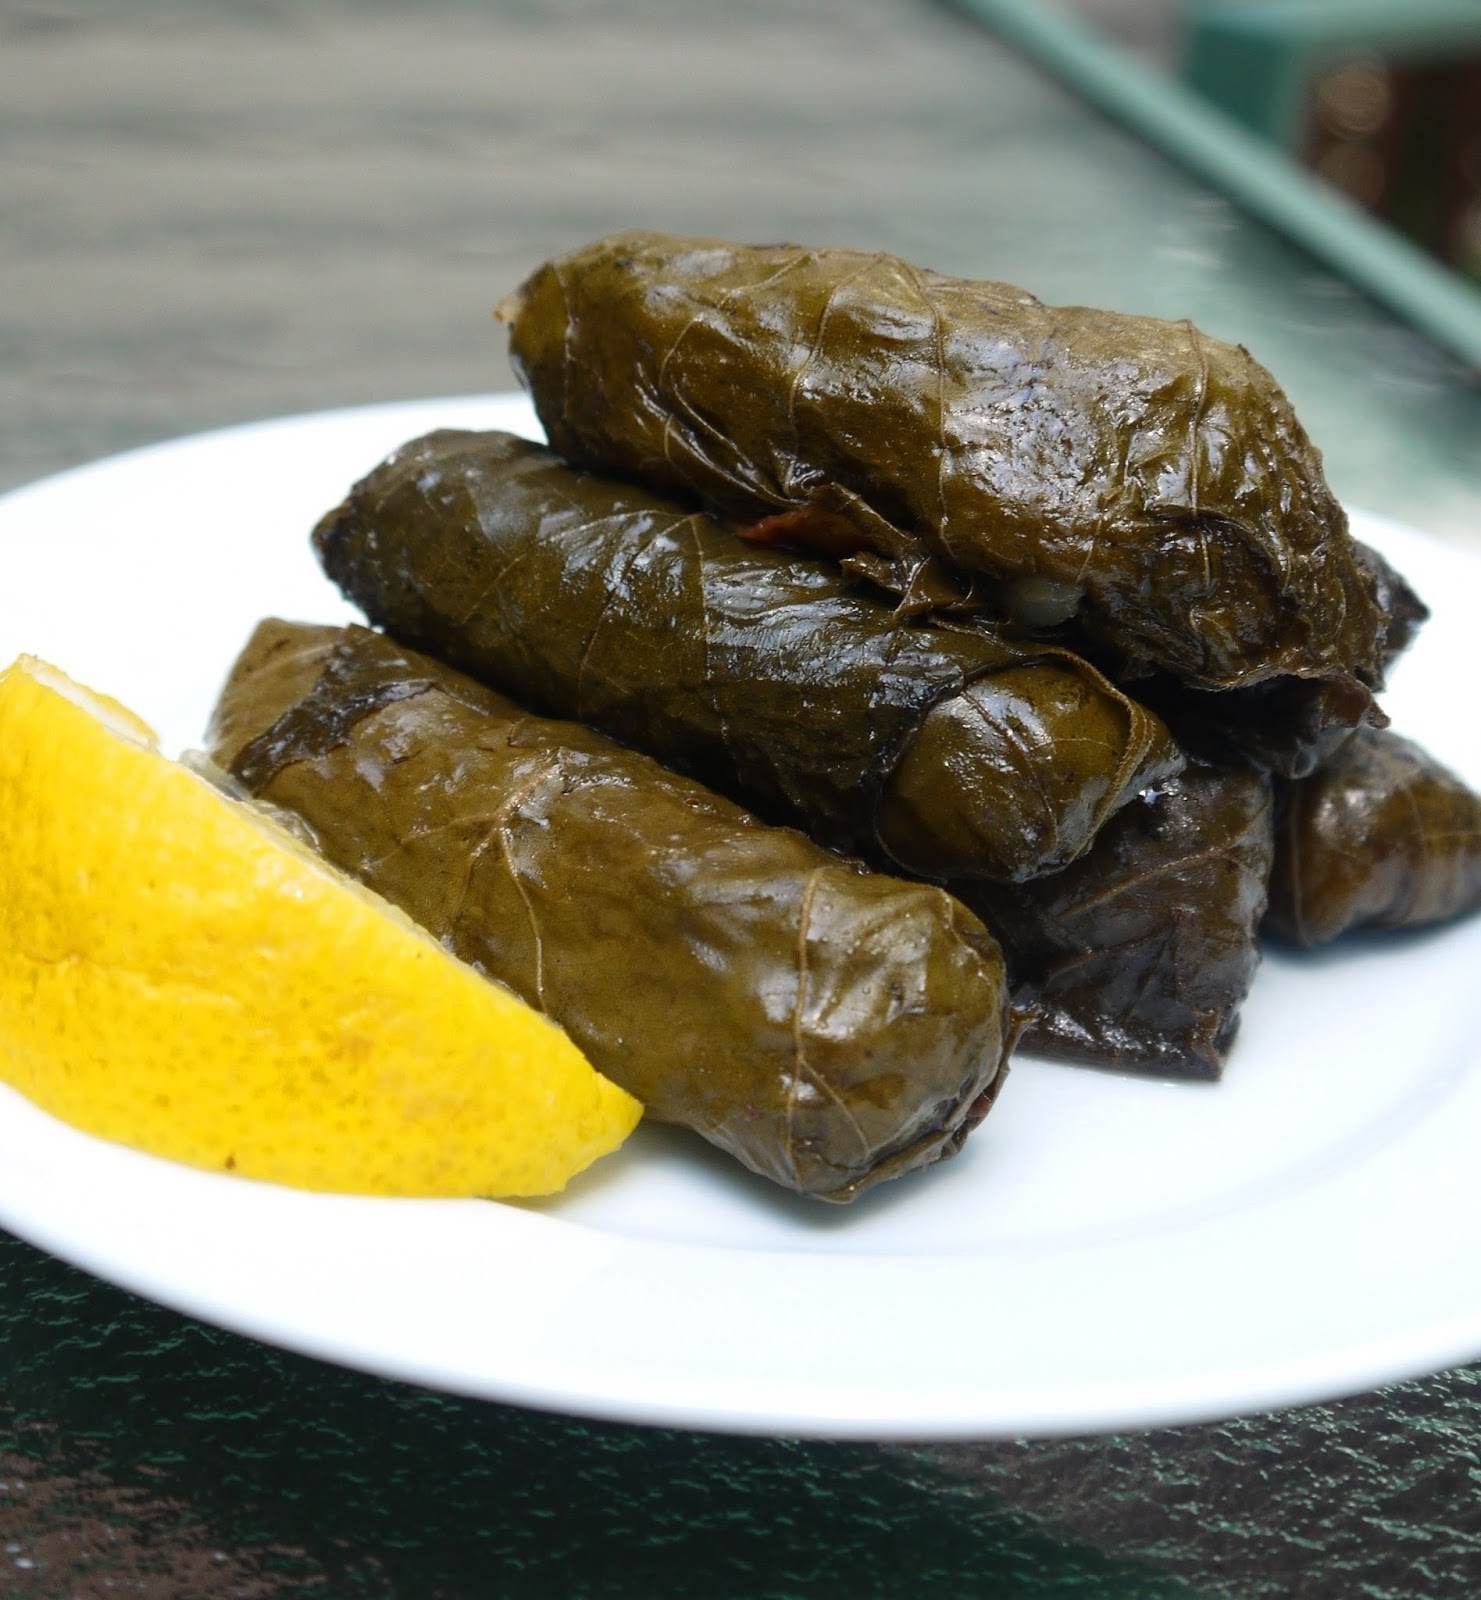 Bint rhodas kitchen how to make palestinian rolled grape leaves tutorial how to roll grape leaves forumfinder Gallery